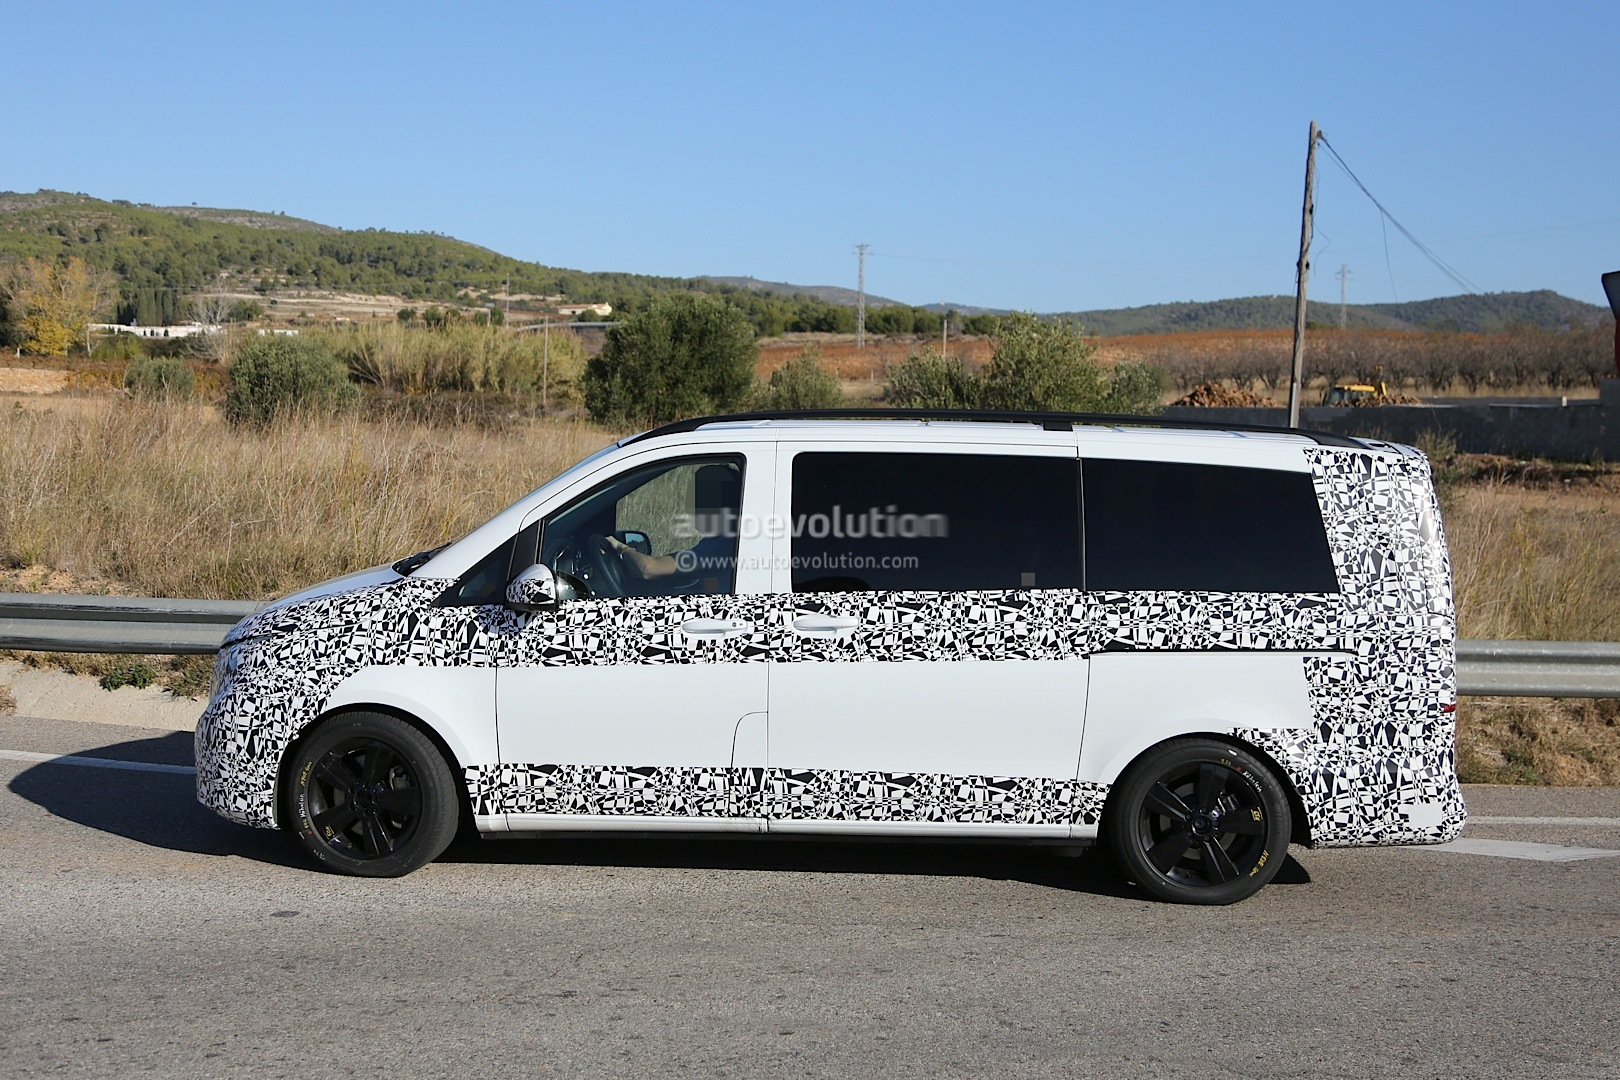 2014 - [Mercedes] Classe V/Vito - Page 4 Herd-of-2015-mercedes-benz-v-class-prototypes-caught-in-the-open-photo-gallery-1080p-4